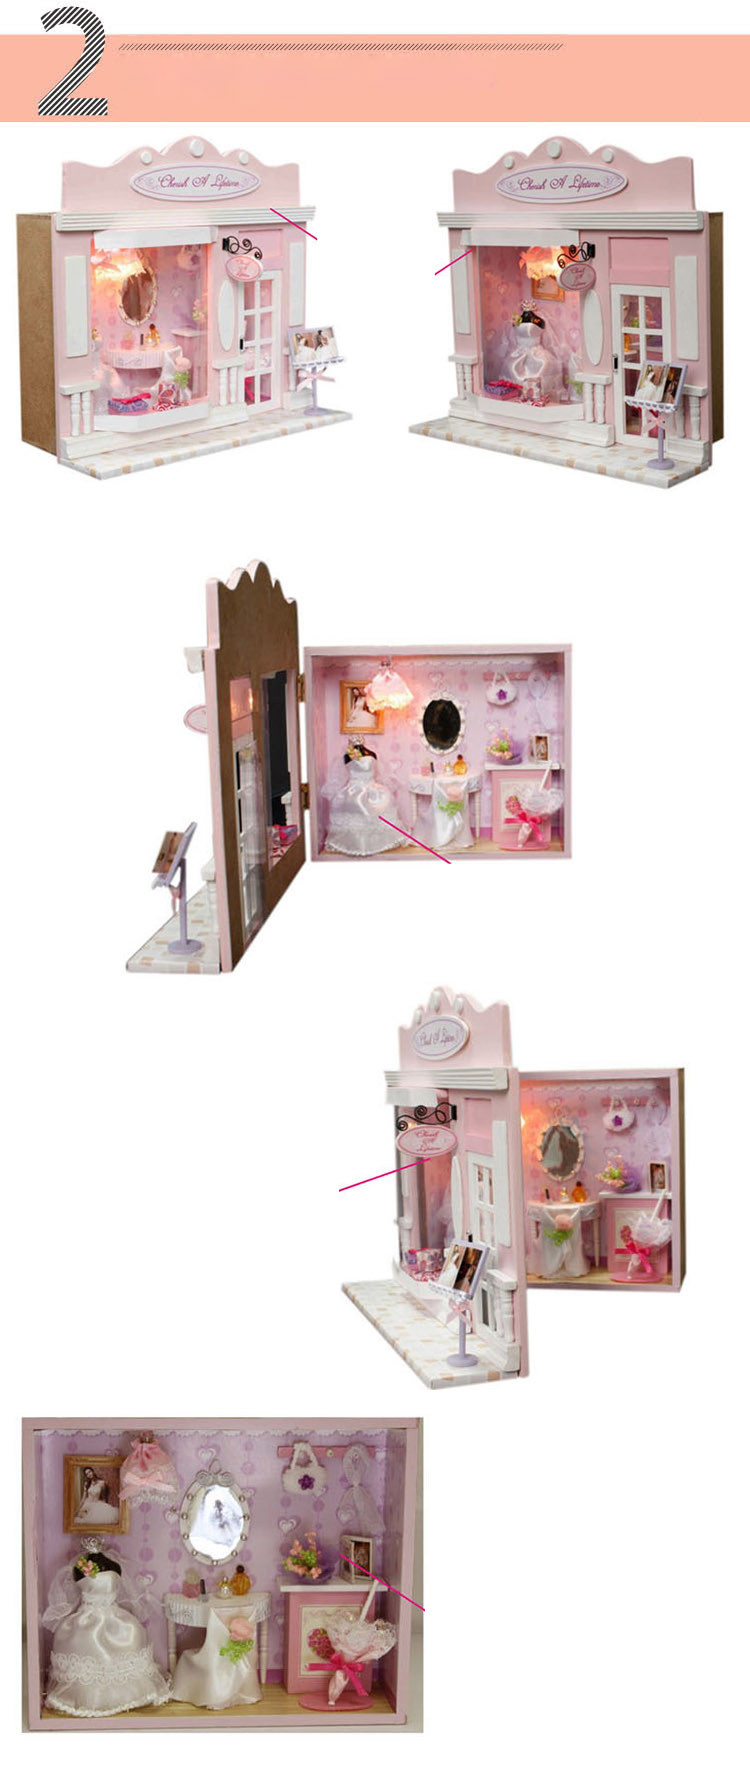 Kids Wooden DIY House Puzzle Toys Doll House Furniture Kits Pink Wedding Shop Love Life Hut Stores Hand-assembled Model Toys (2)